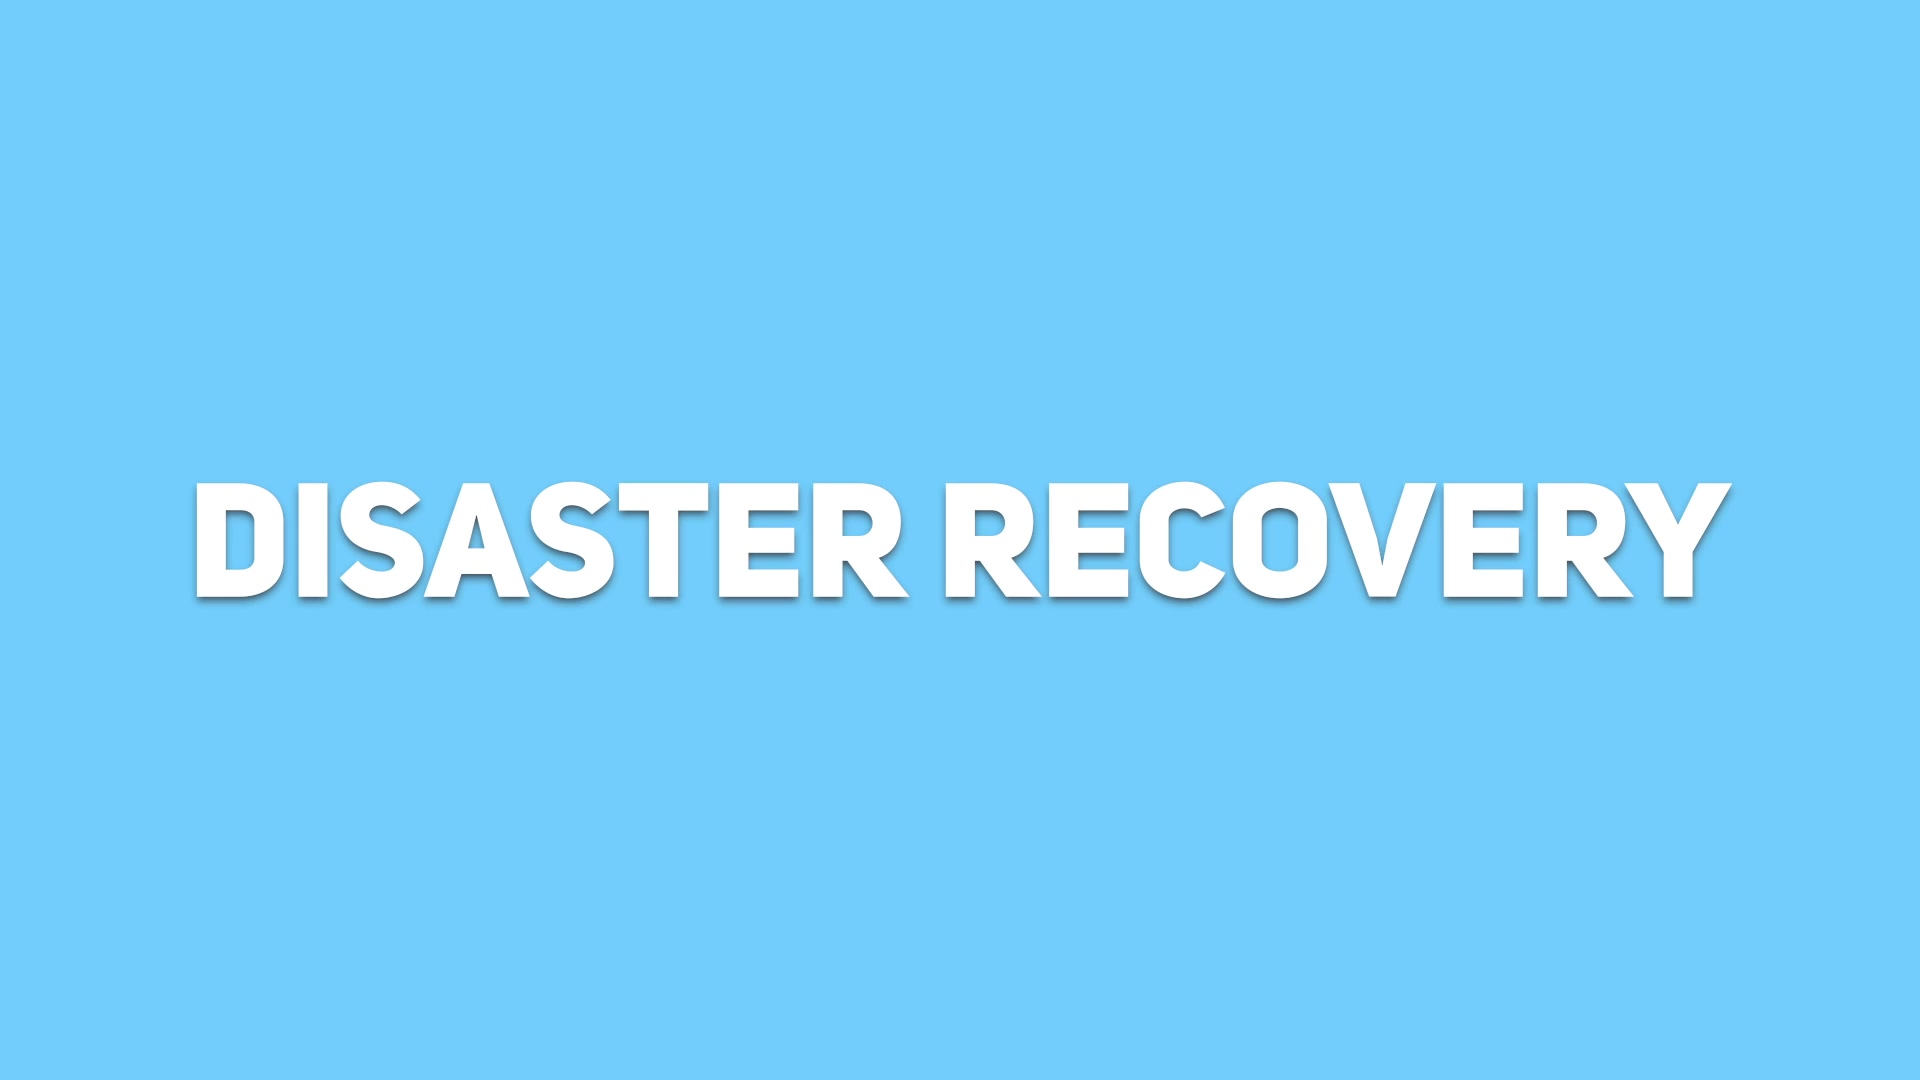 RCS - Disaster Recovery